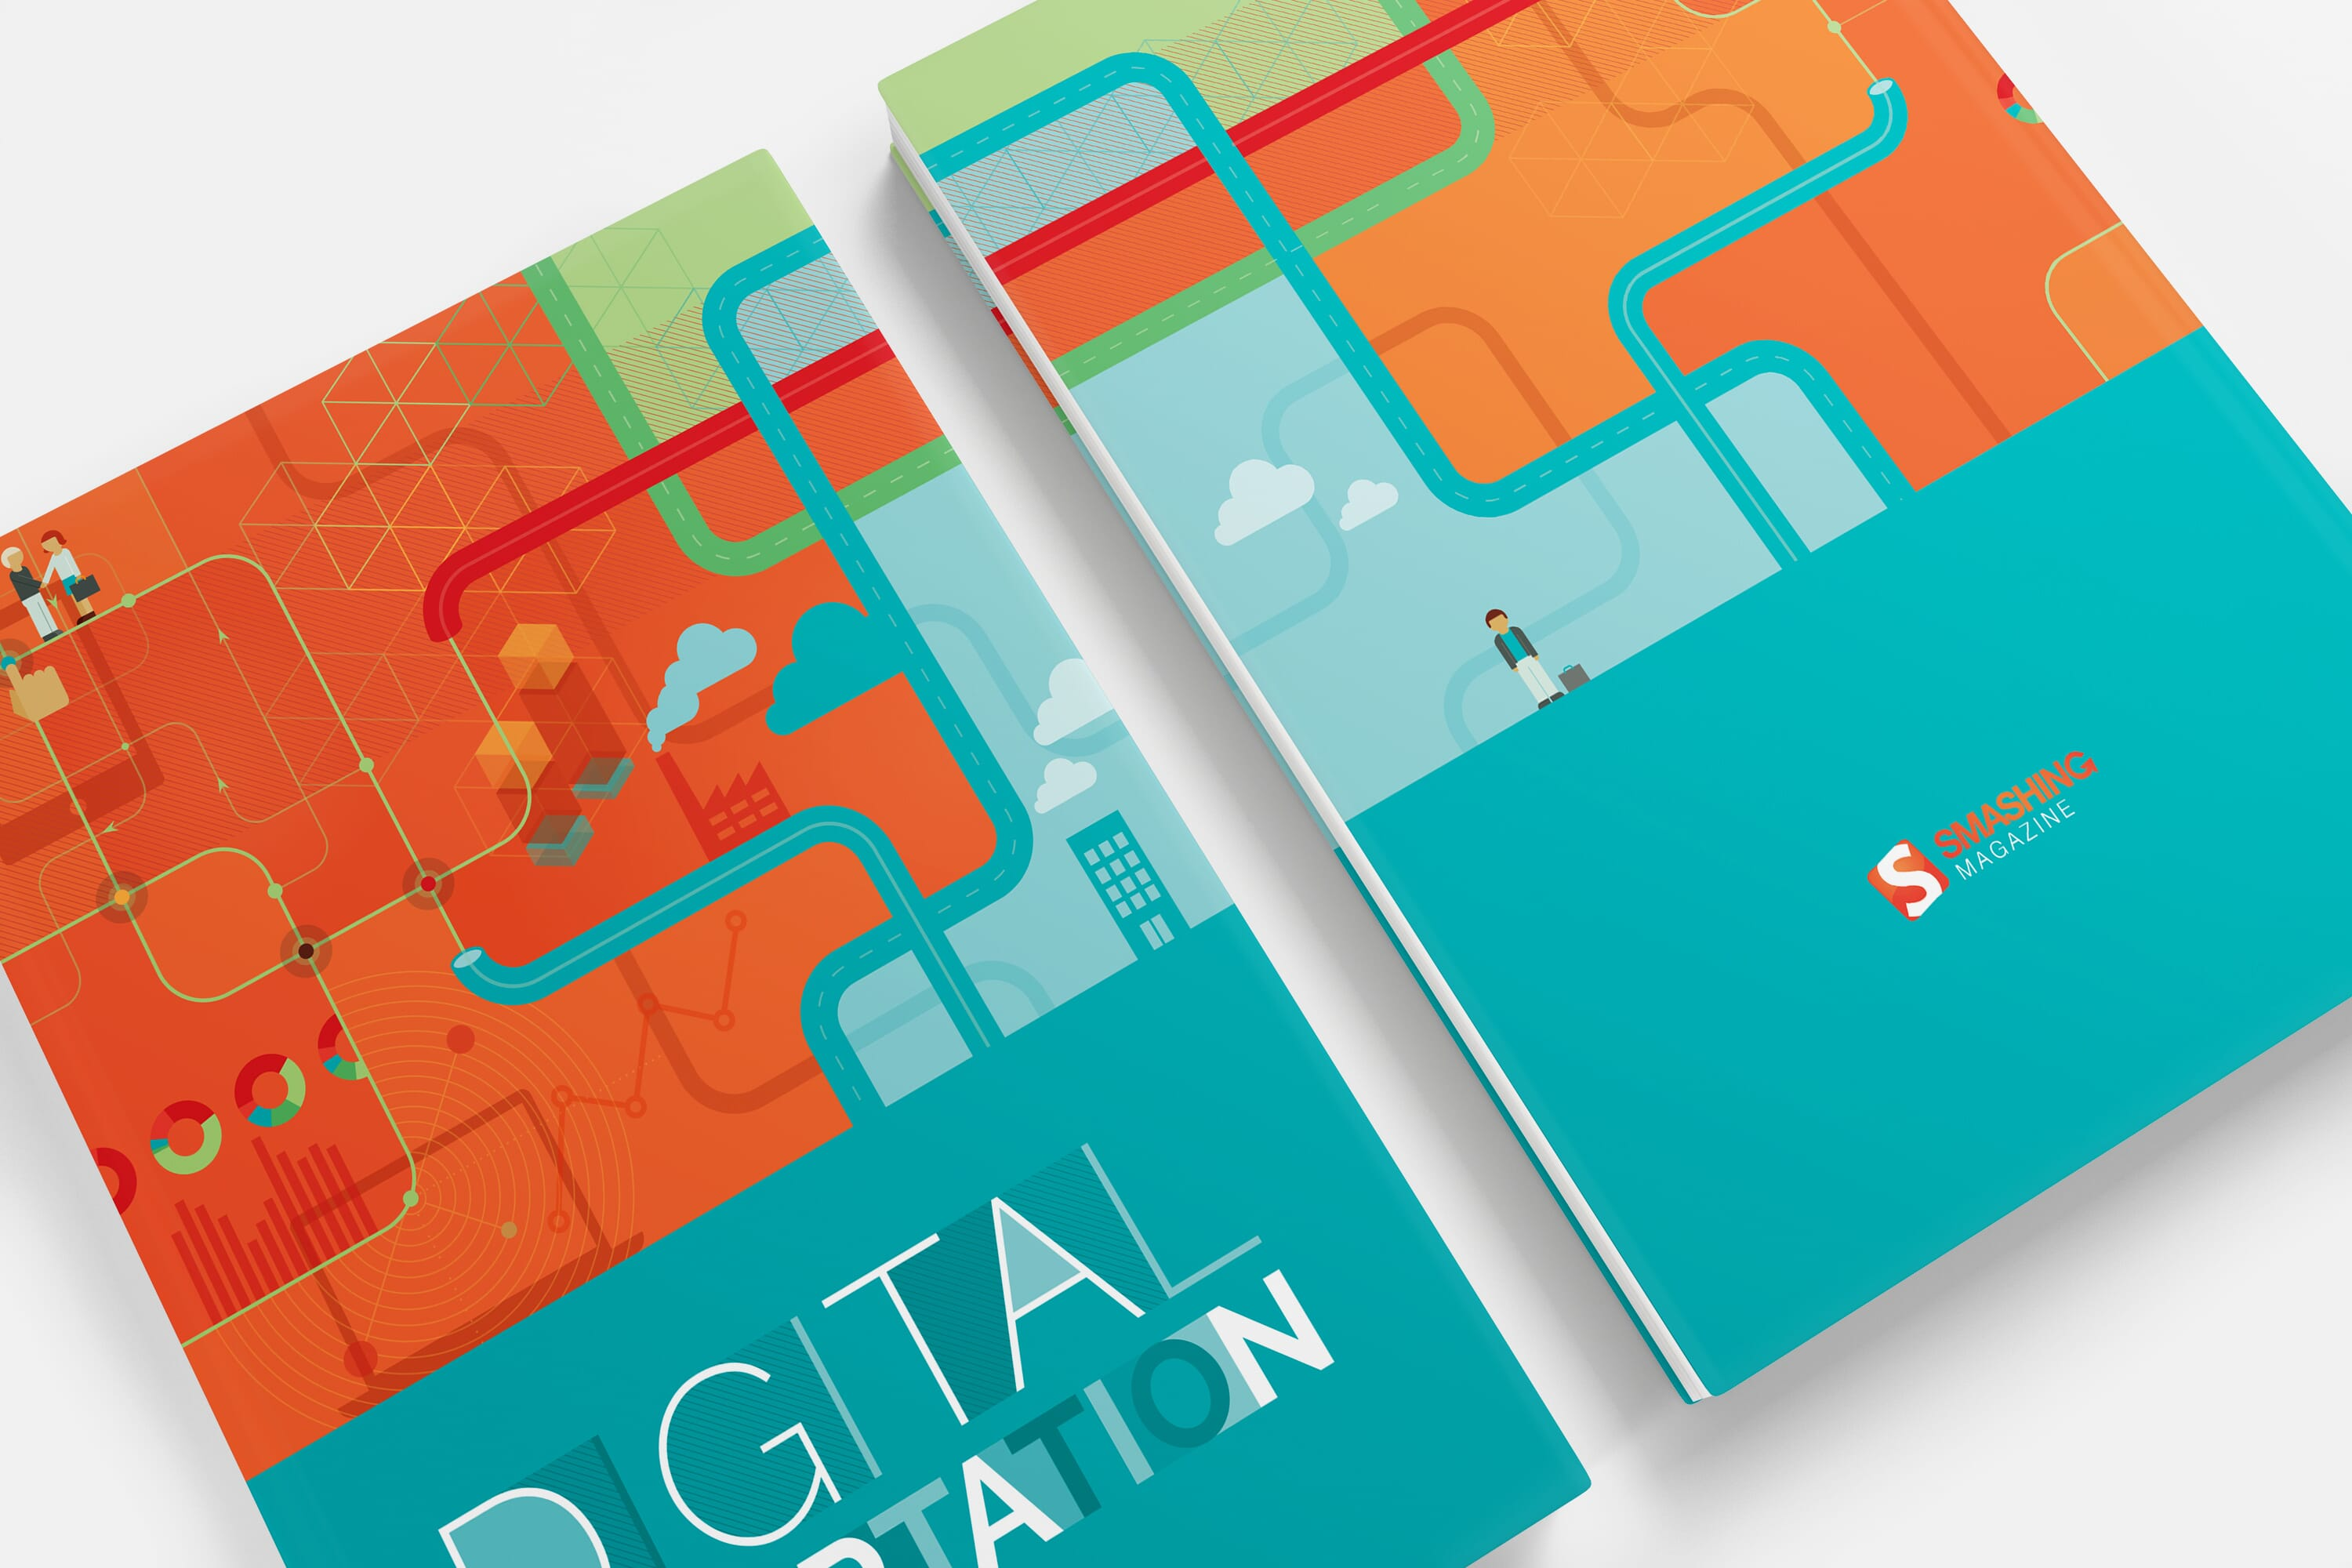 Digital Adapatation - My book on digital transformation